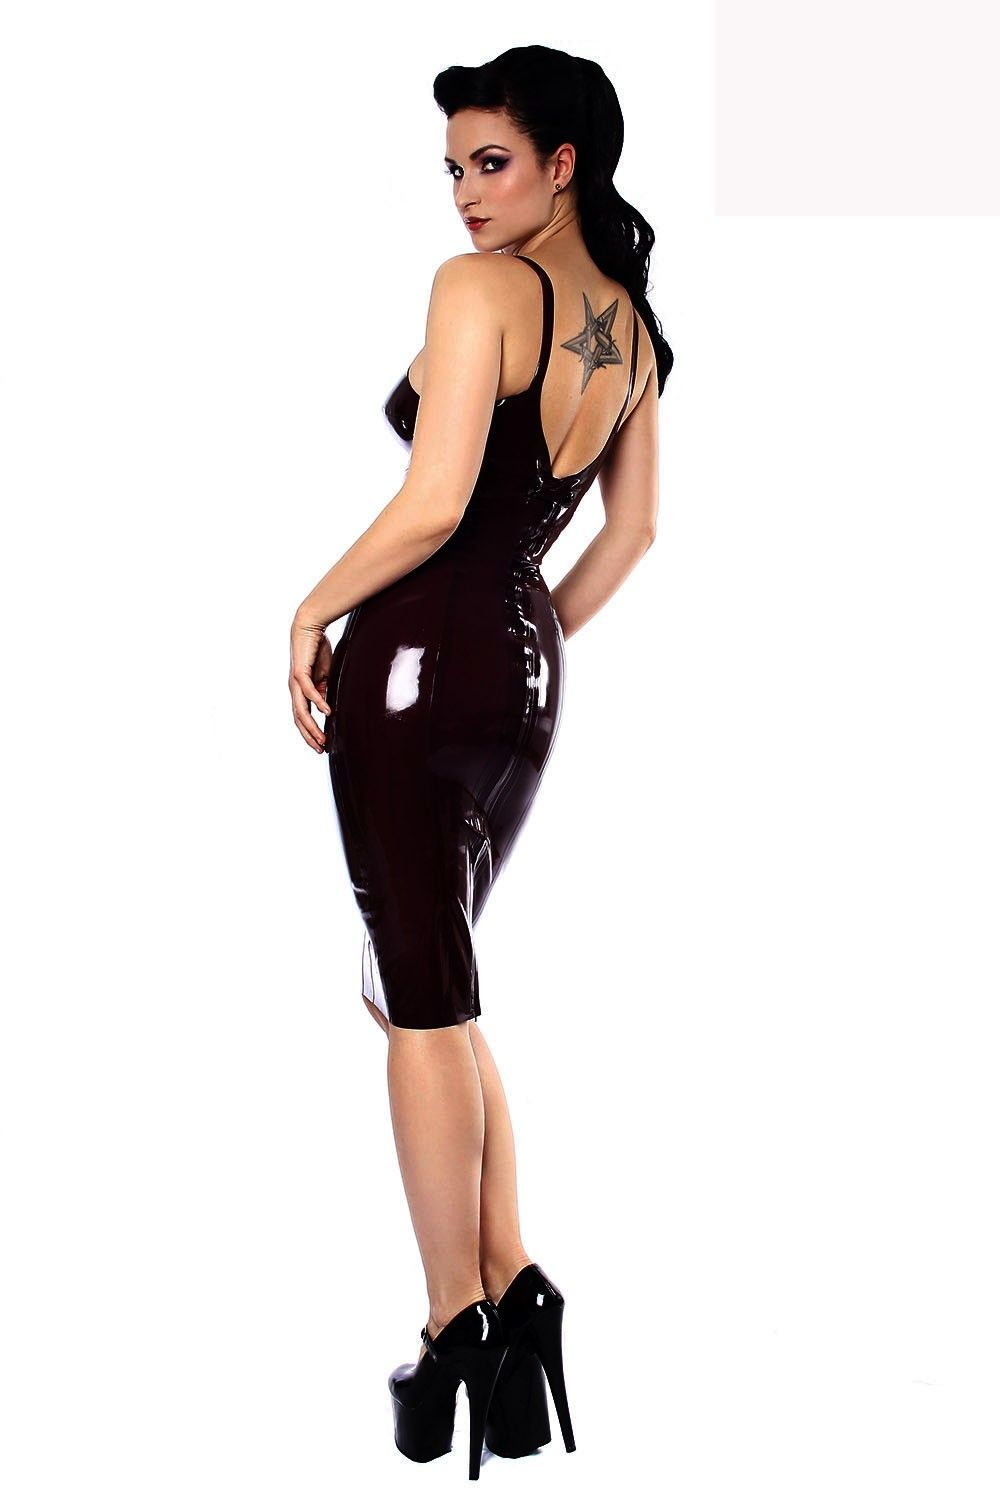 238cb0d452 Retro Styled Integral Structured Bullet-bra and A Zip Closure at Centre  Back Tight Sexy Pencil Dress Women Night Club Wear Dress - Lingerie Life  Lingerie ...